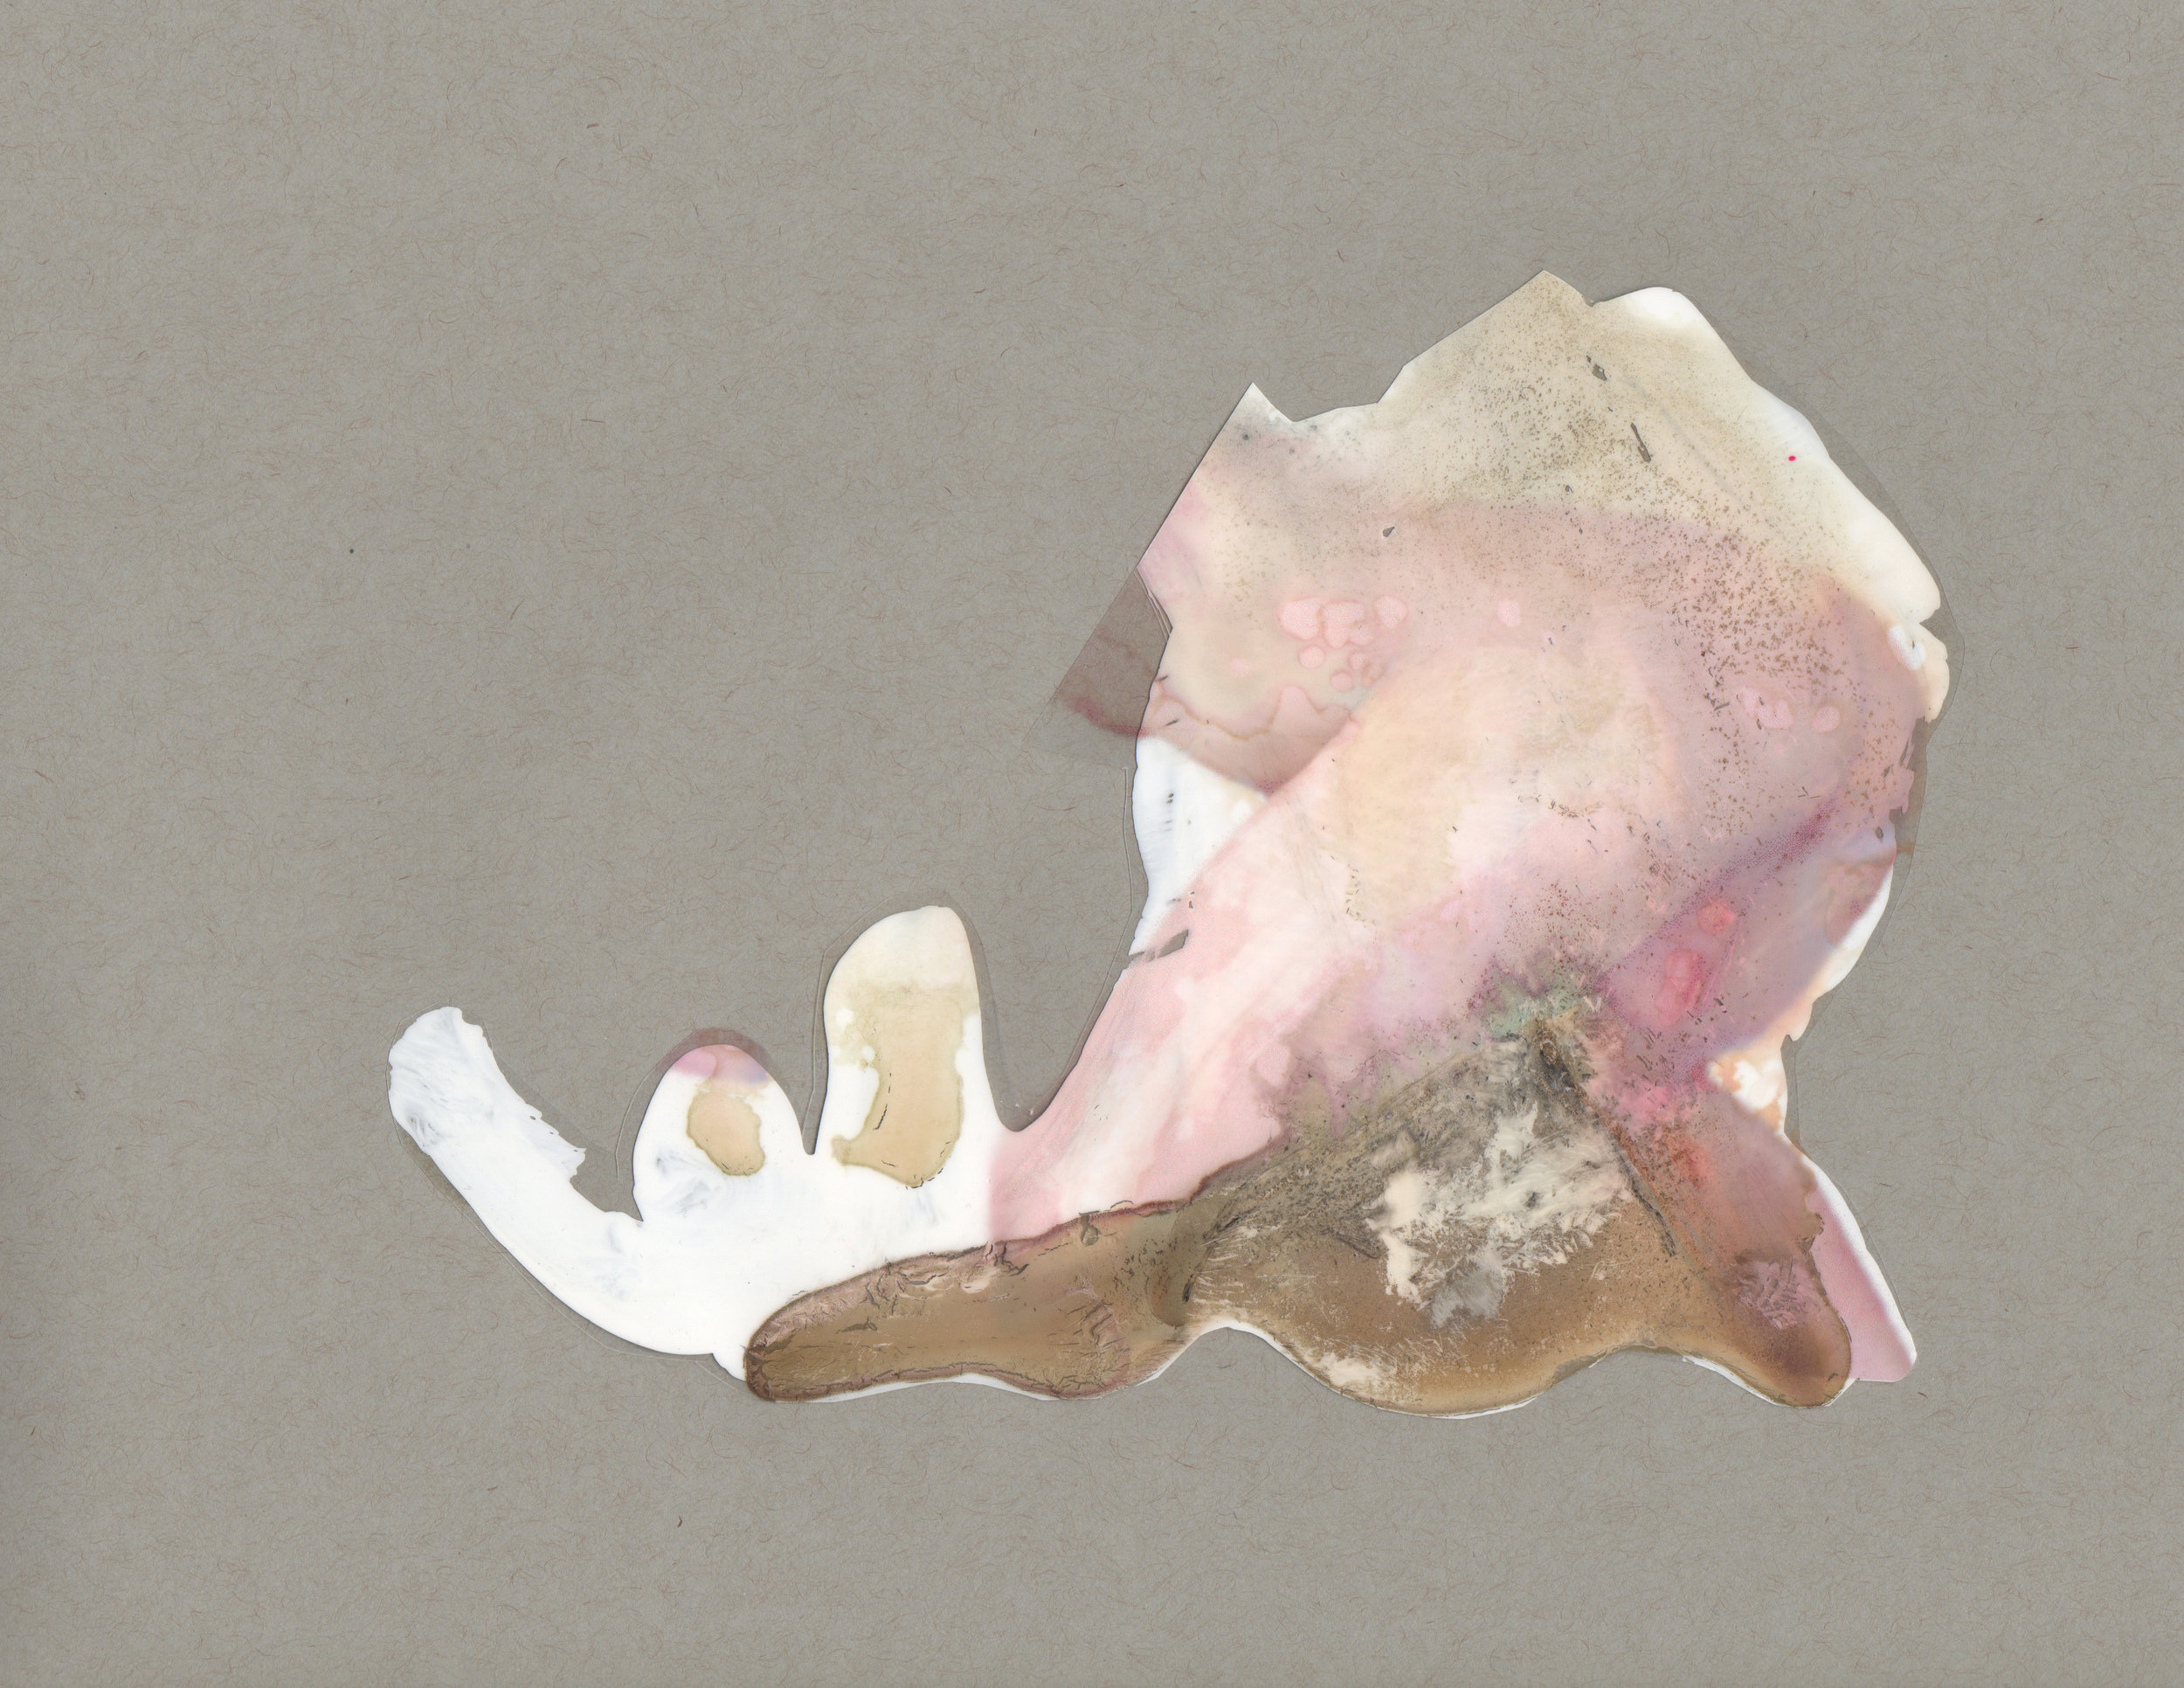 Balancing the Aura, 2014, paint transparency archival ink and paper, 9x12 inches